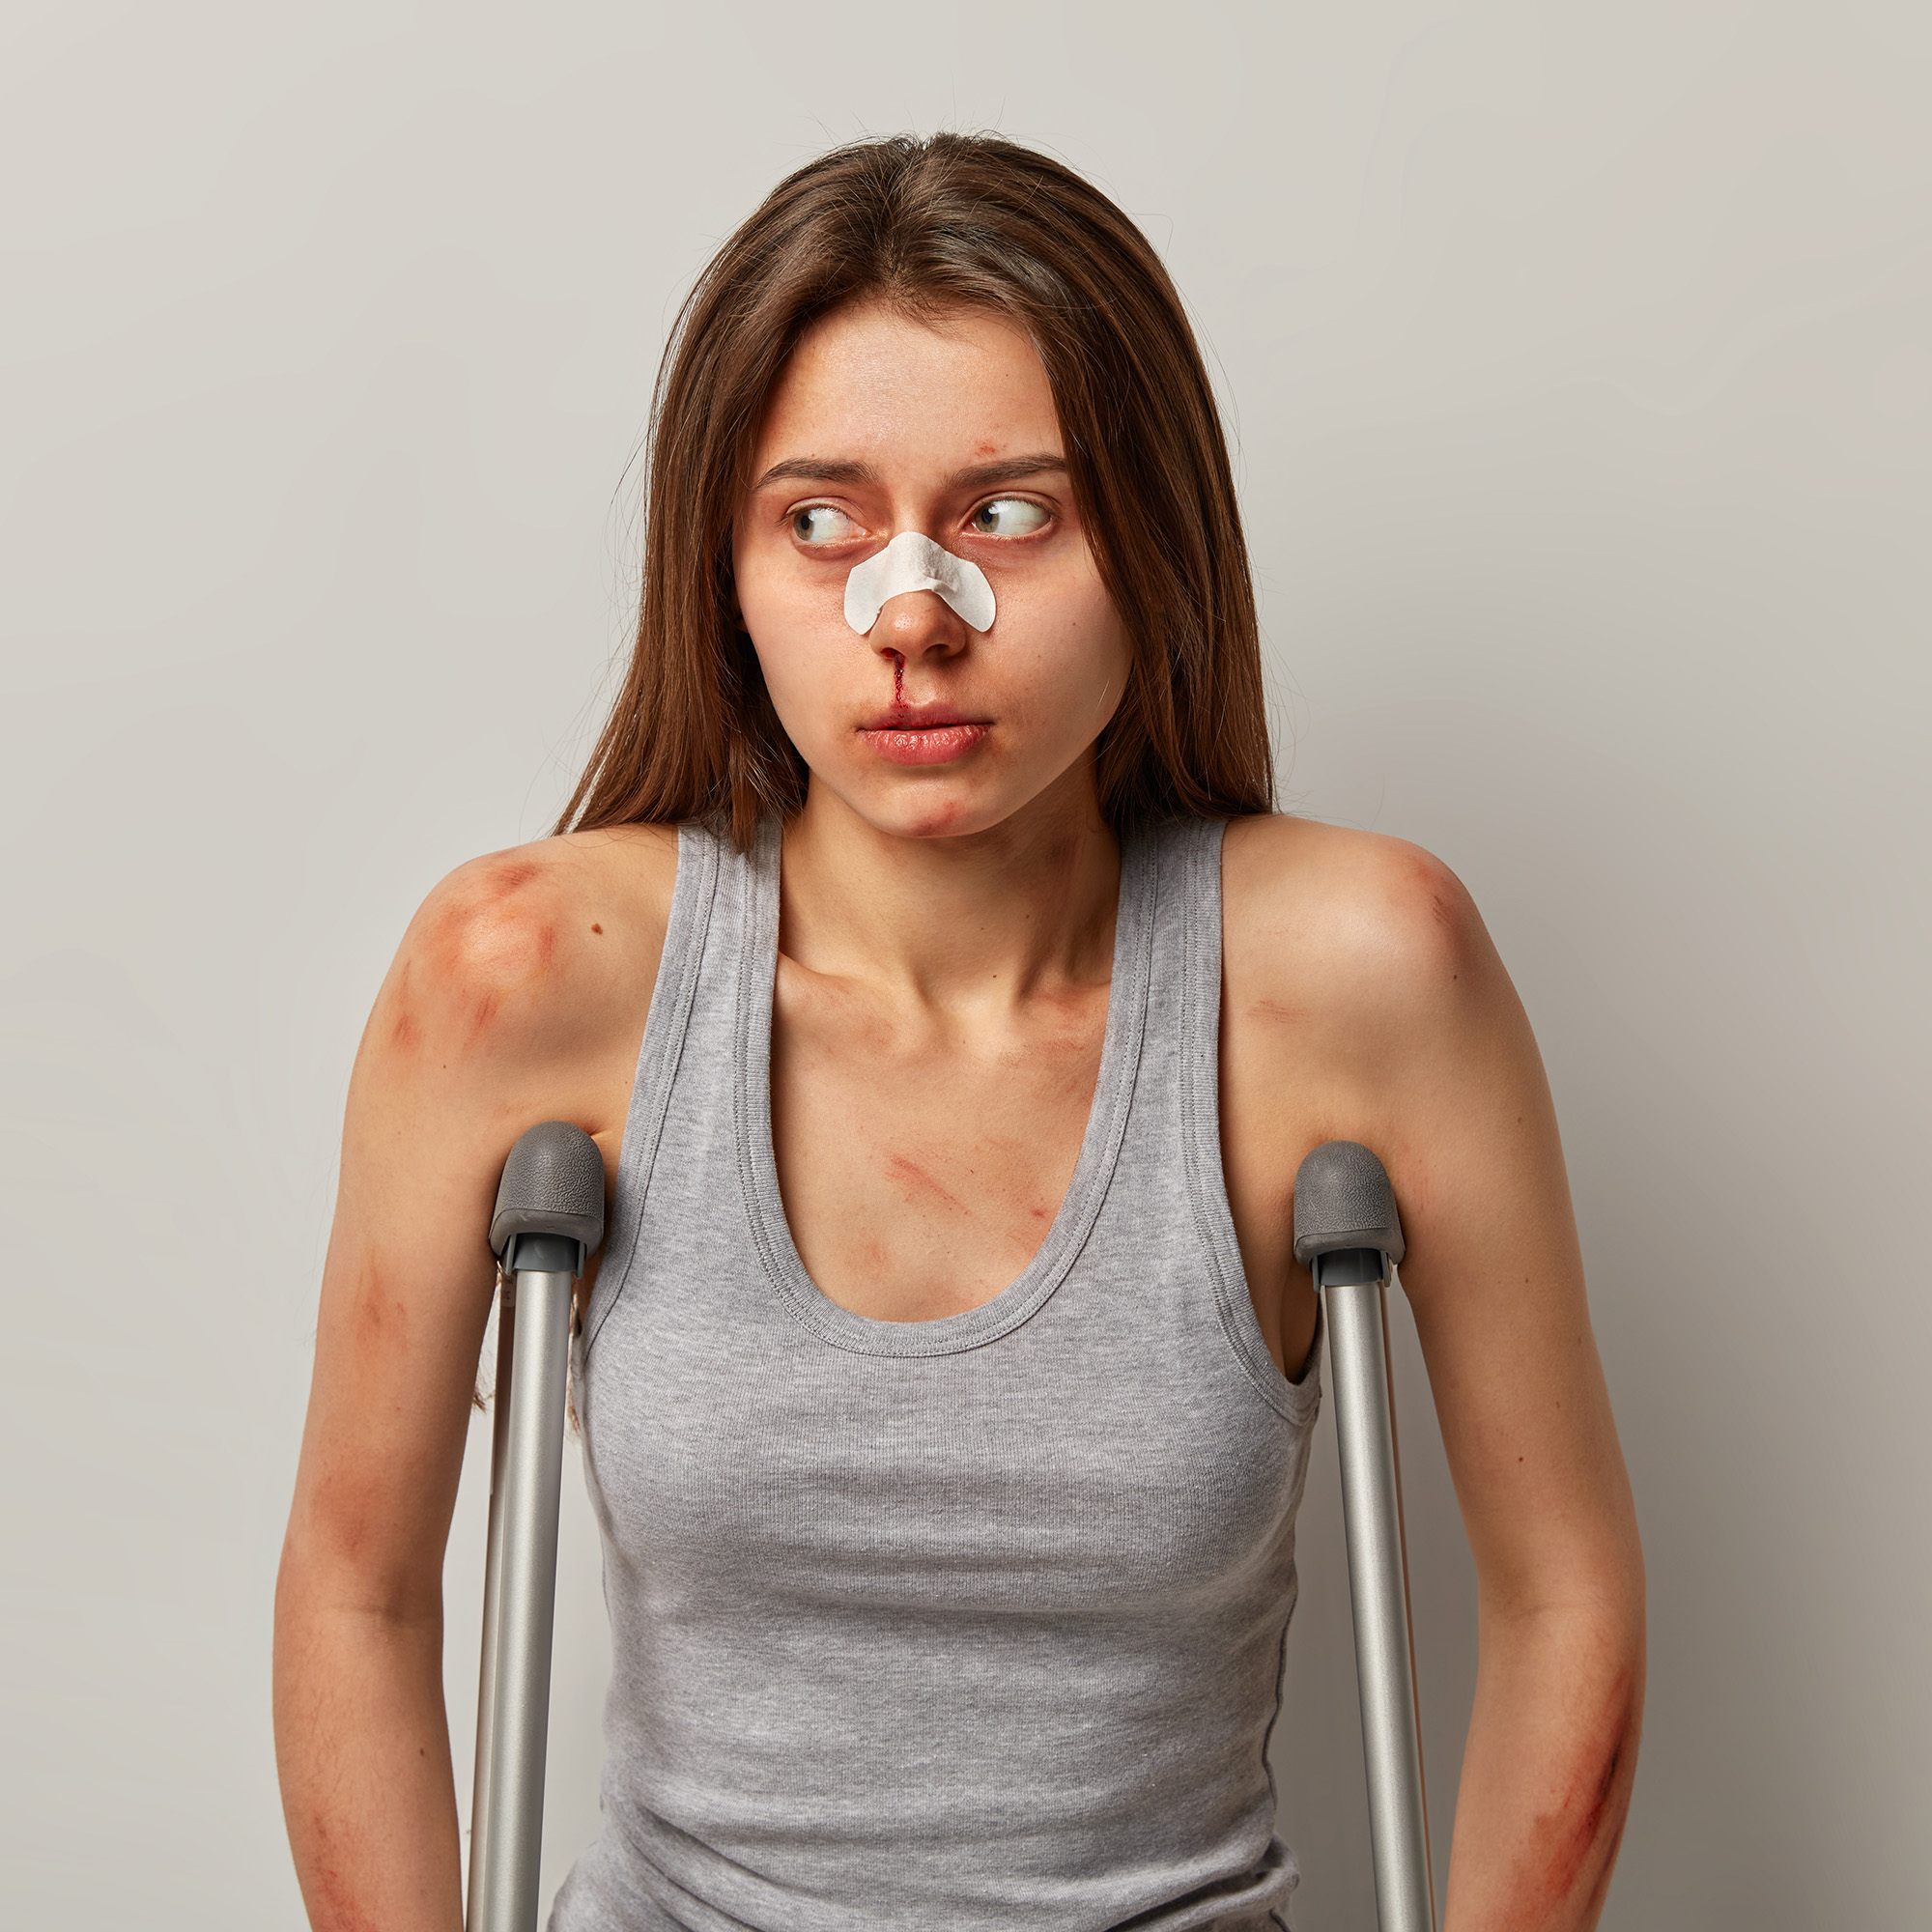 Photo of displeased woman suffers from consequences of ladder or roofing accident looks aside at blank space has much abrasion on body poses with crutches isolated over grey background. Driver failure